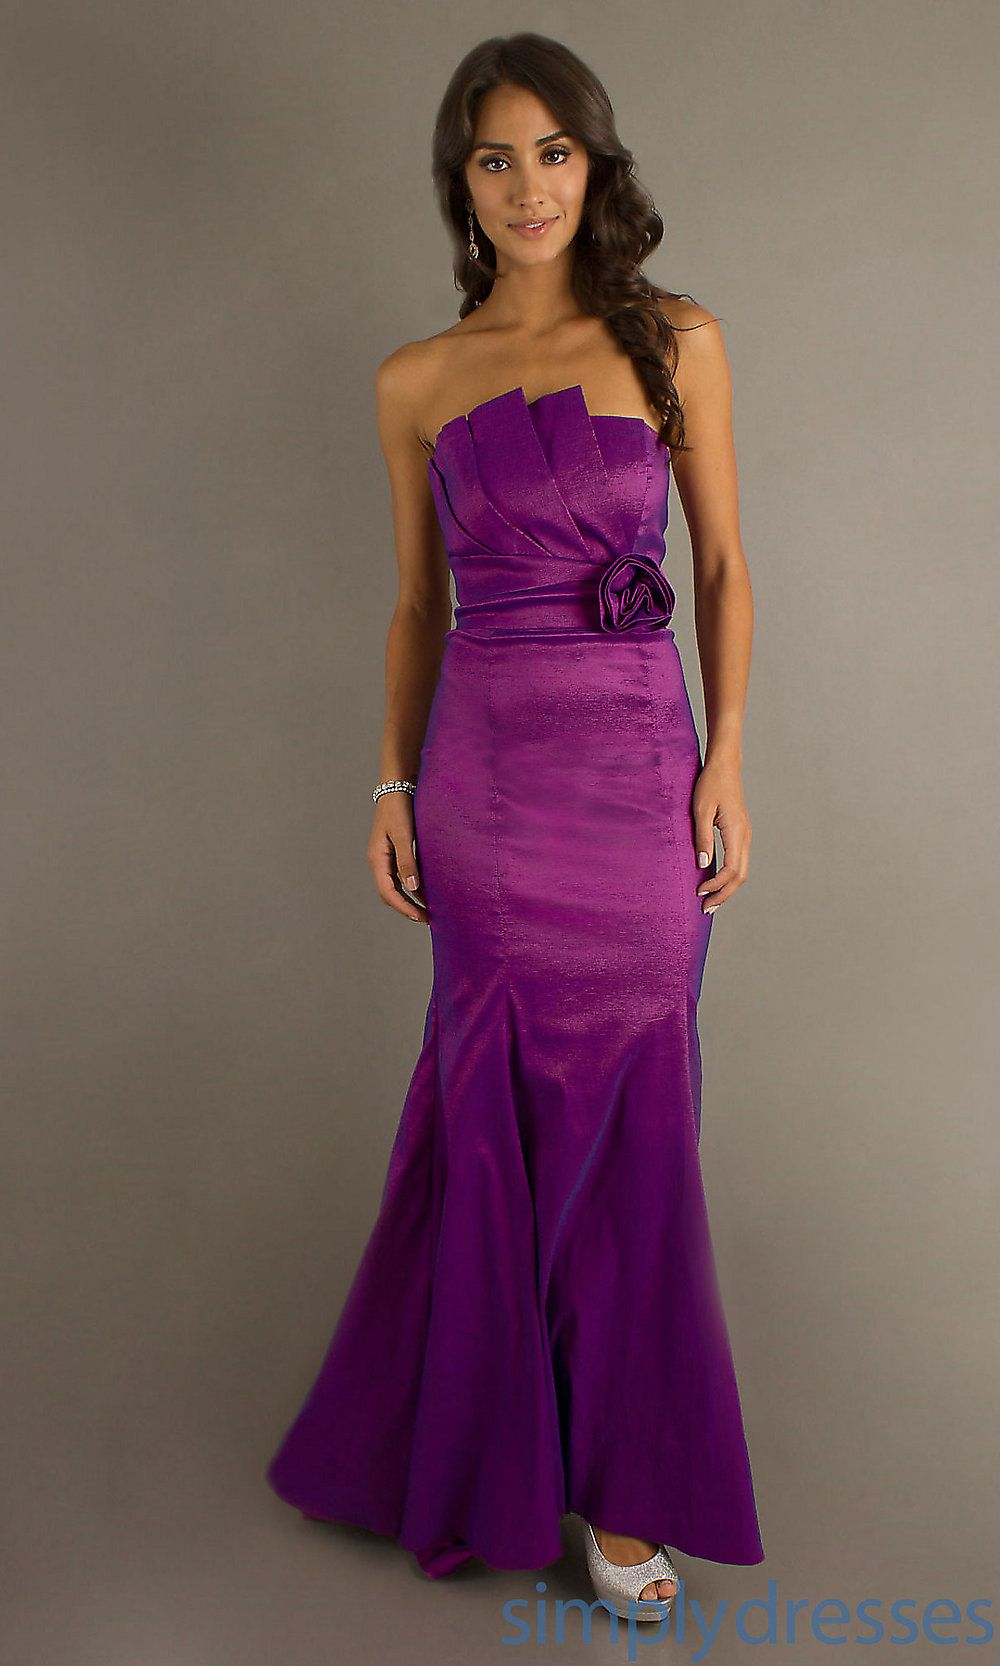 Long Strapless Prom Gown, Cheap Evening Gown - Simply Dresses | Prom ...